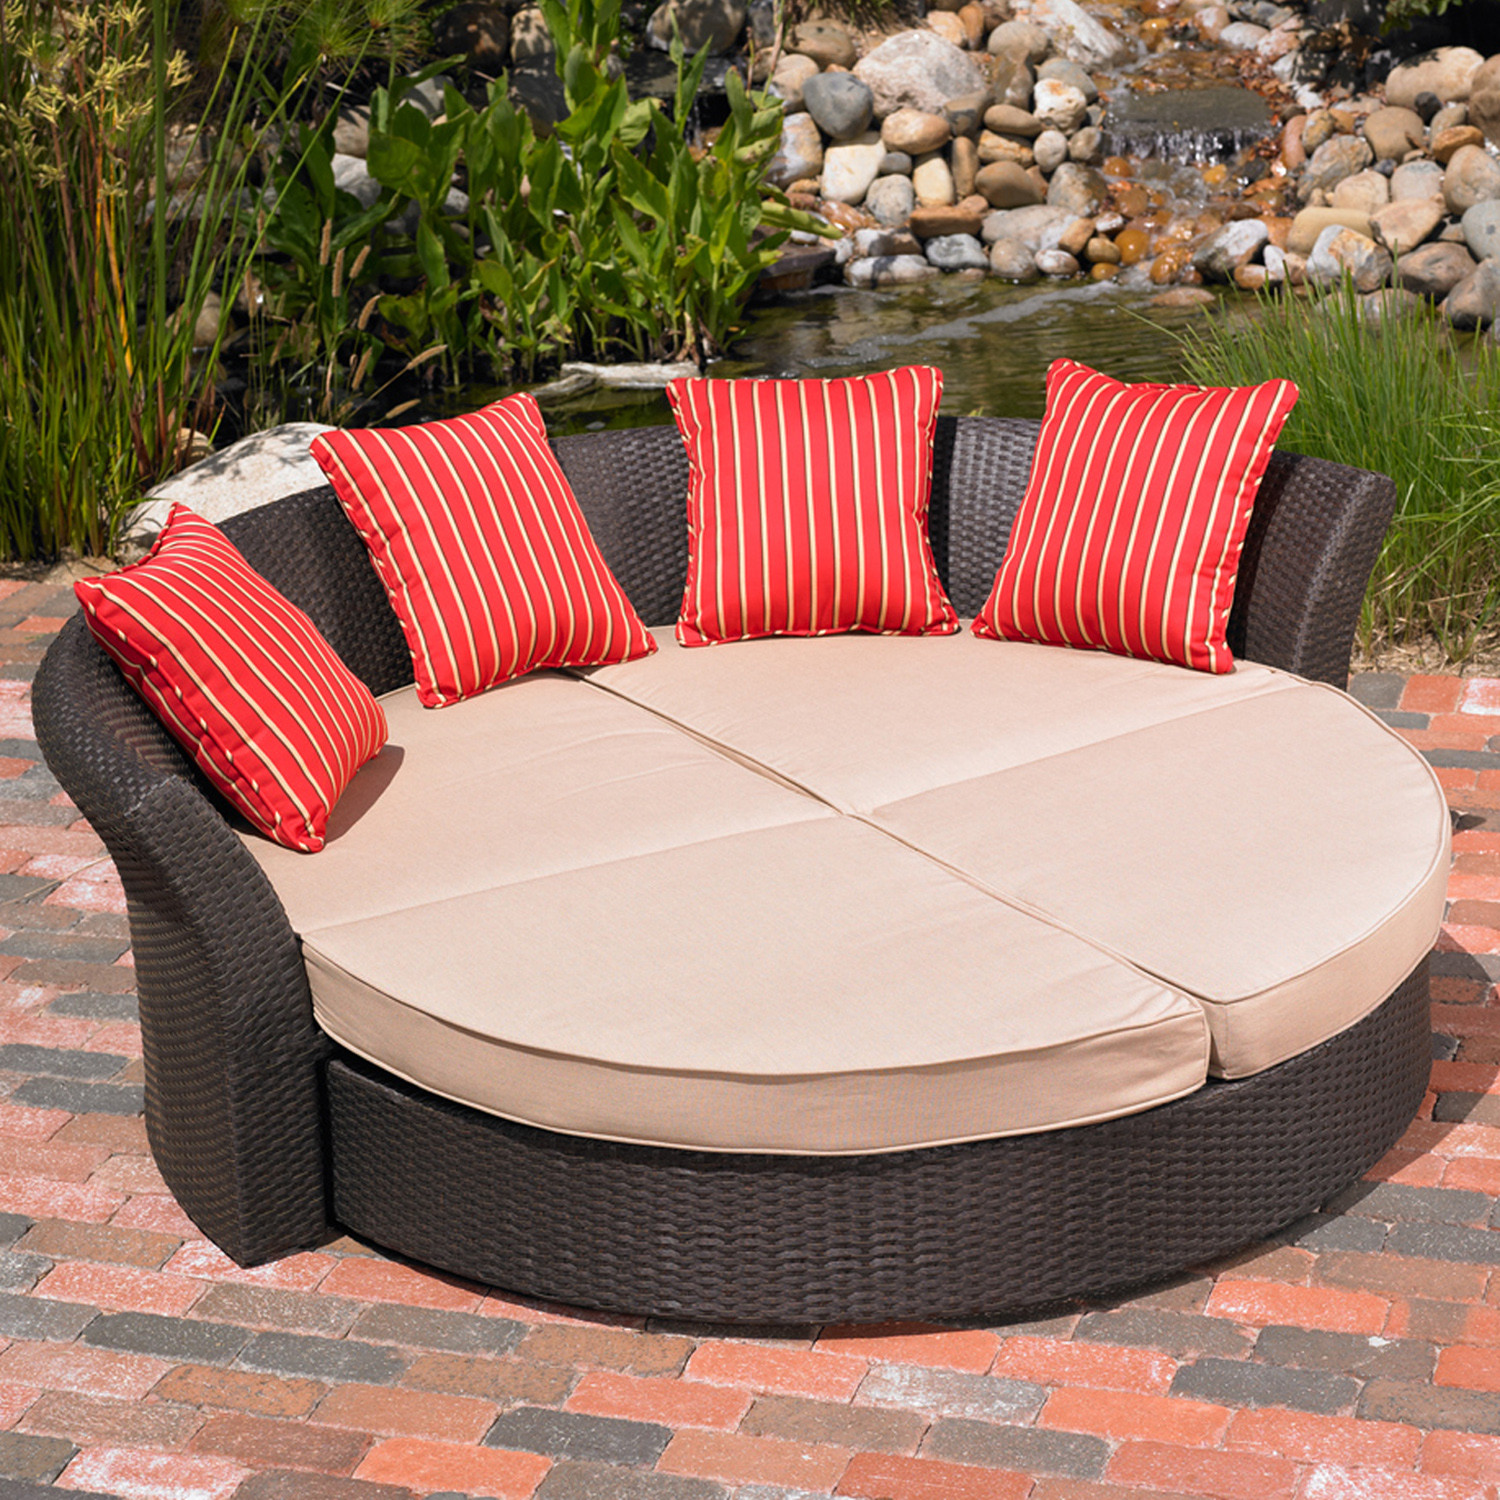 Best ideas about Indoor Patio Furniture . Save or Pin Mission Hills Corinth Daybed Indoor Outdoor Patio Lawn Now.